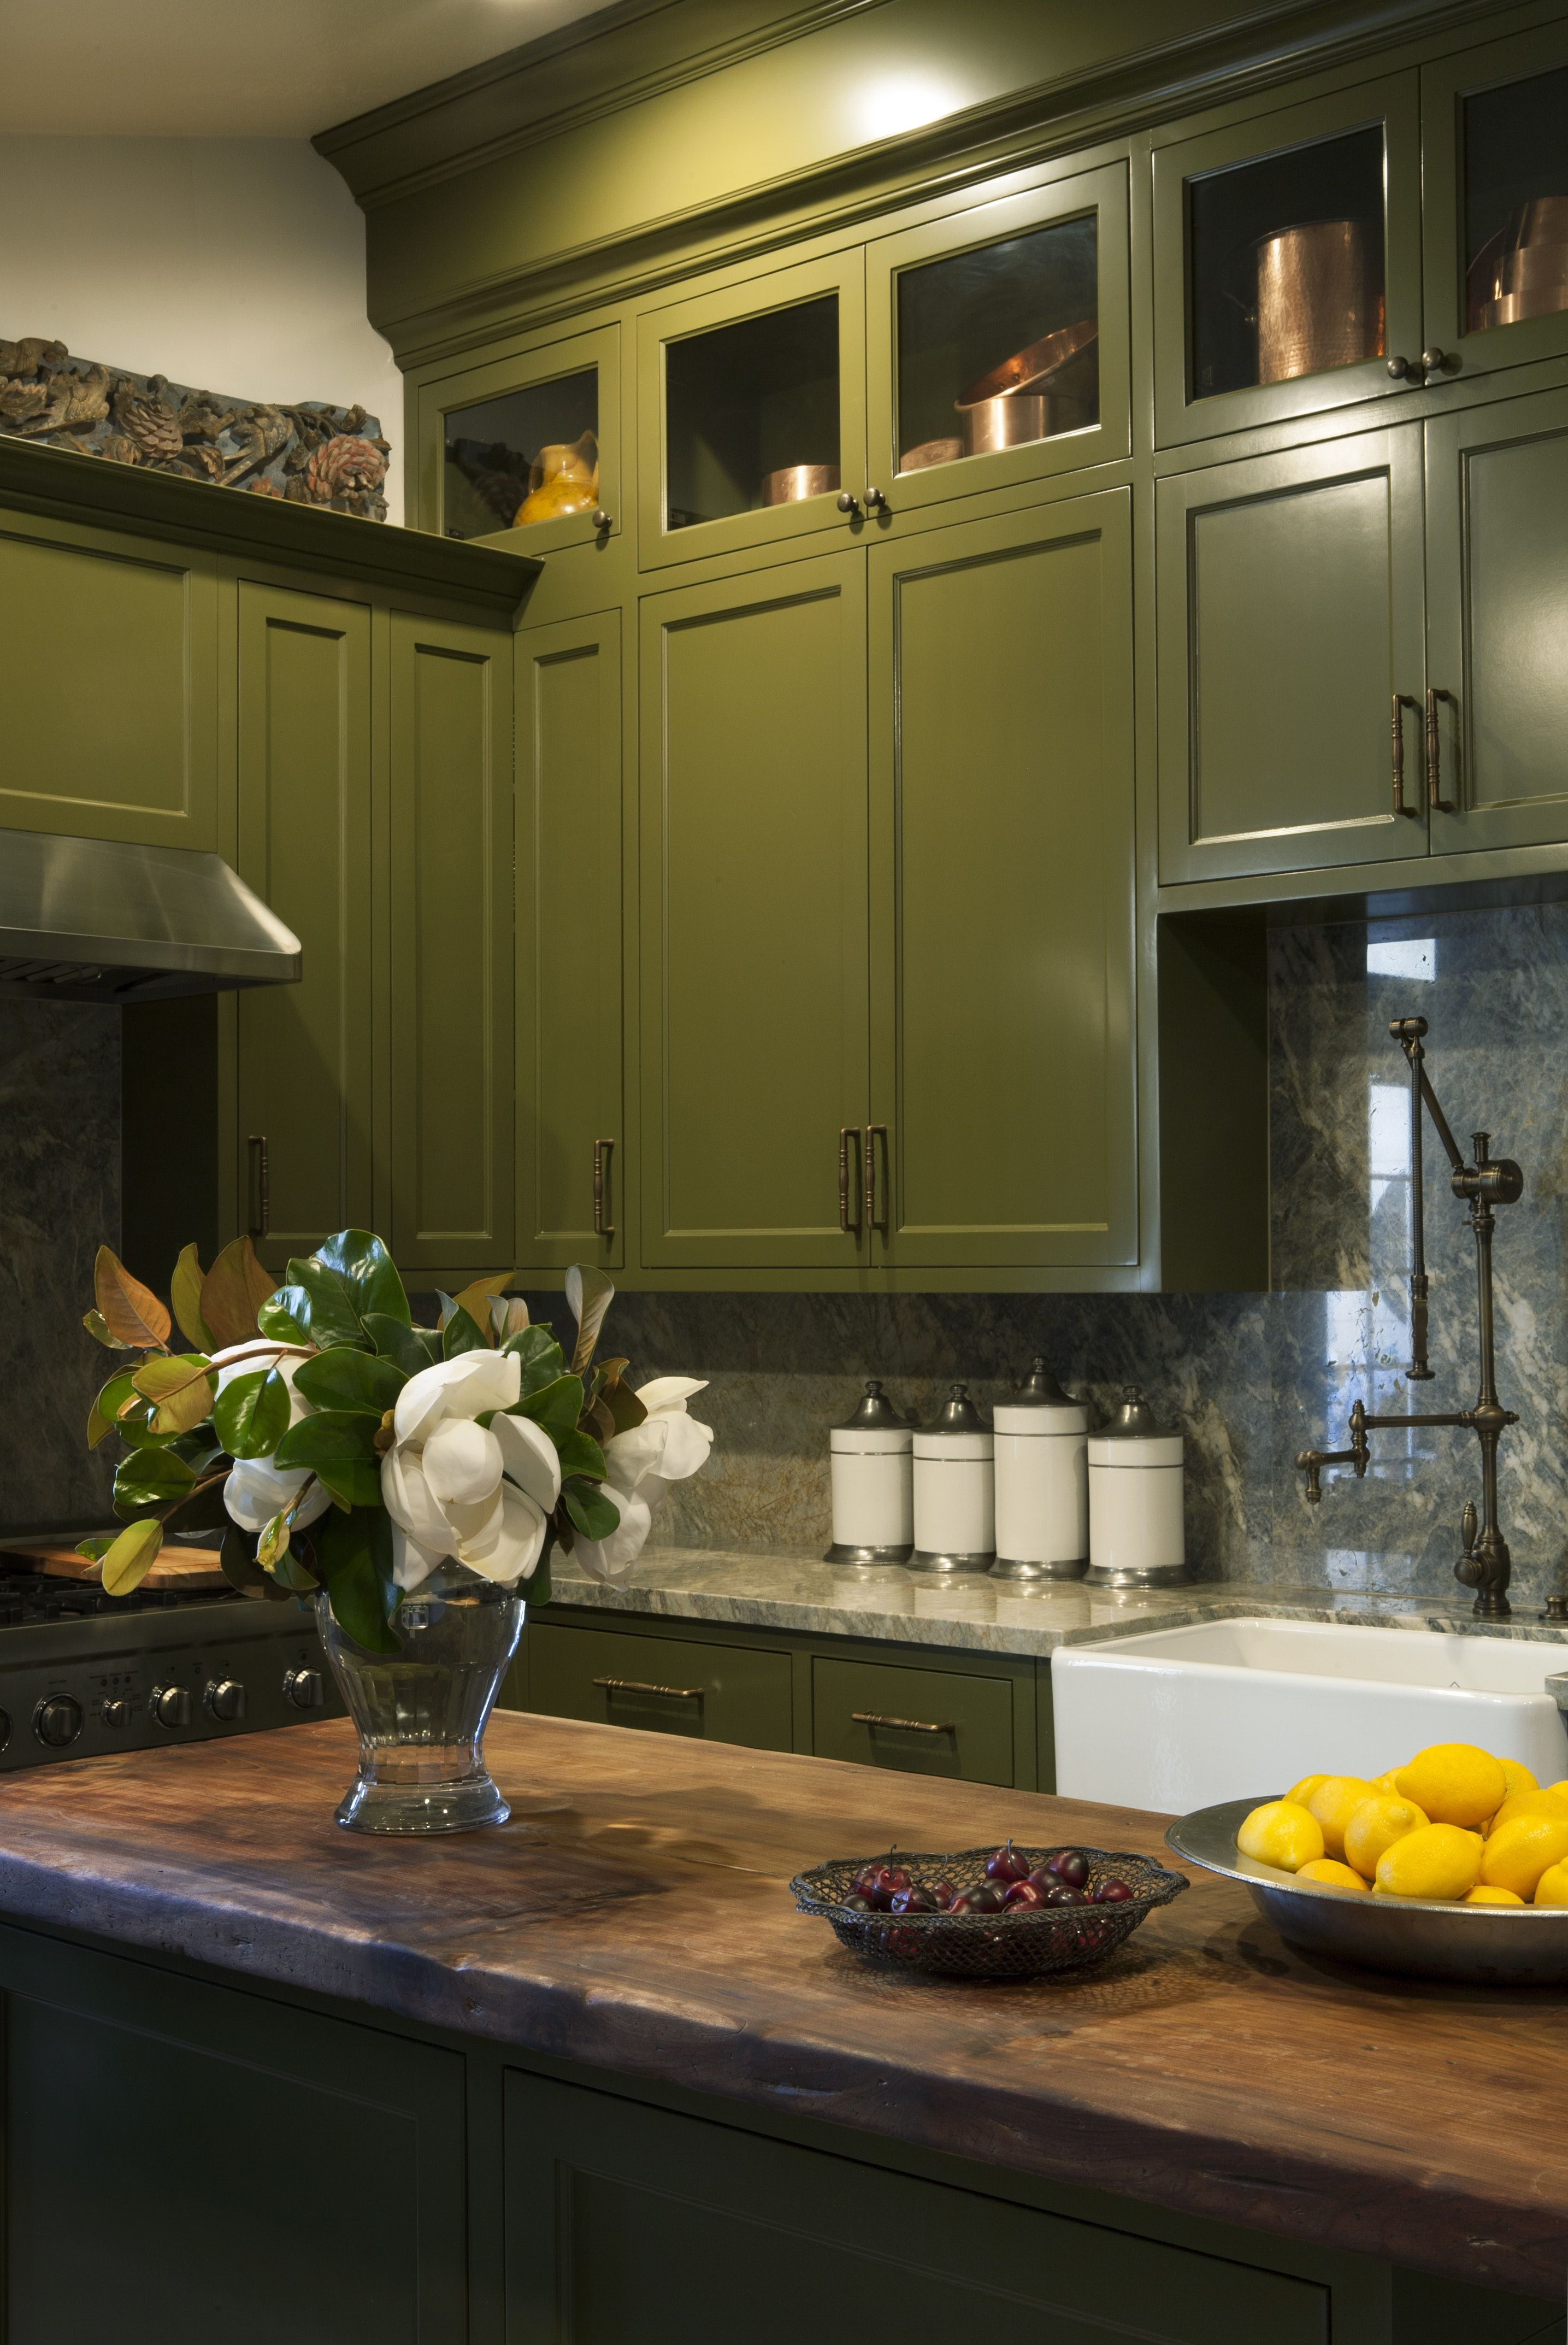 Windowless Kitchen With Olive Green Cabinetry Beautiful Color Green Kitchen Decor Olive Green Kitchen Green Kitchen Walls